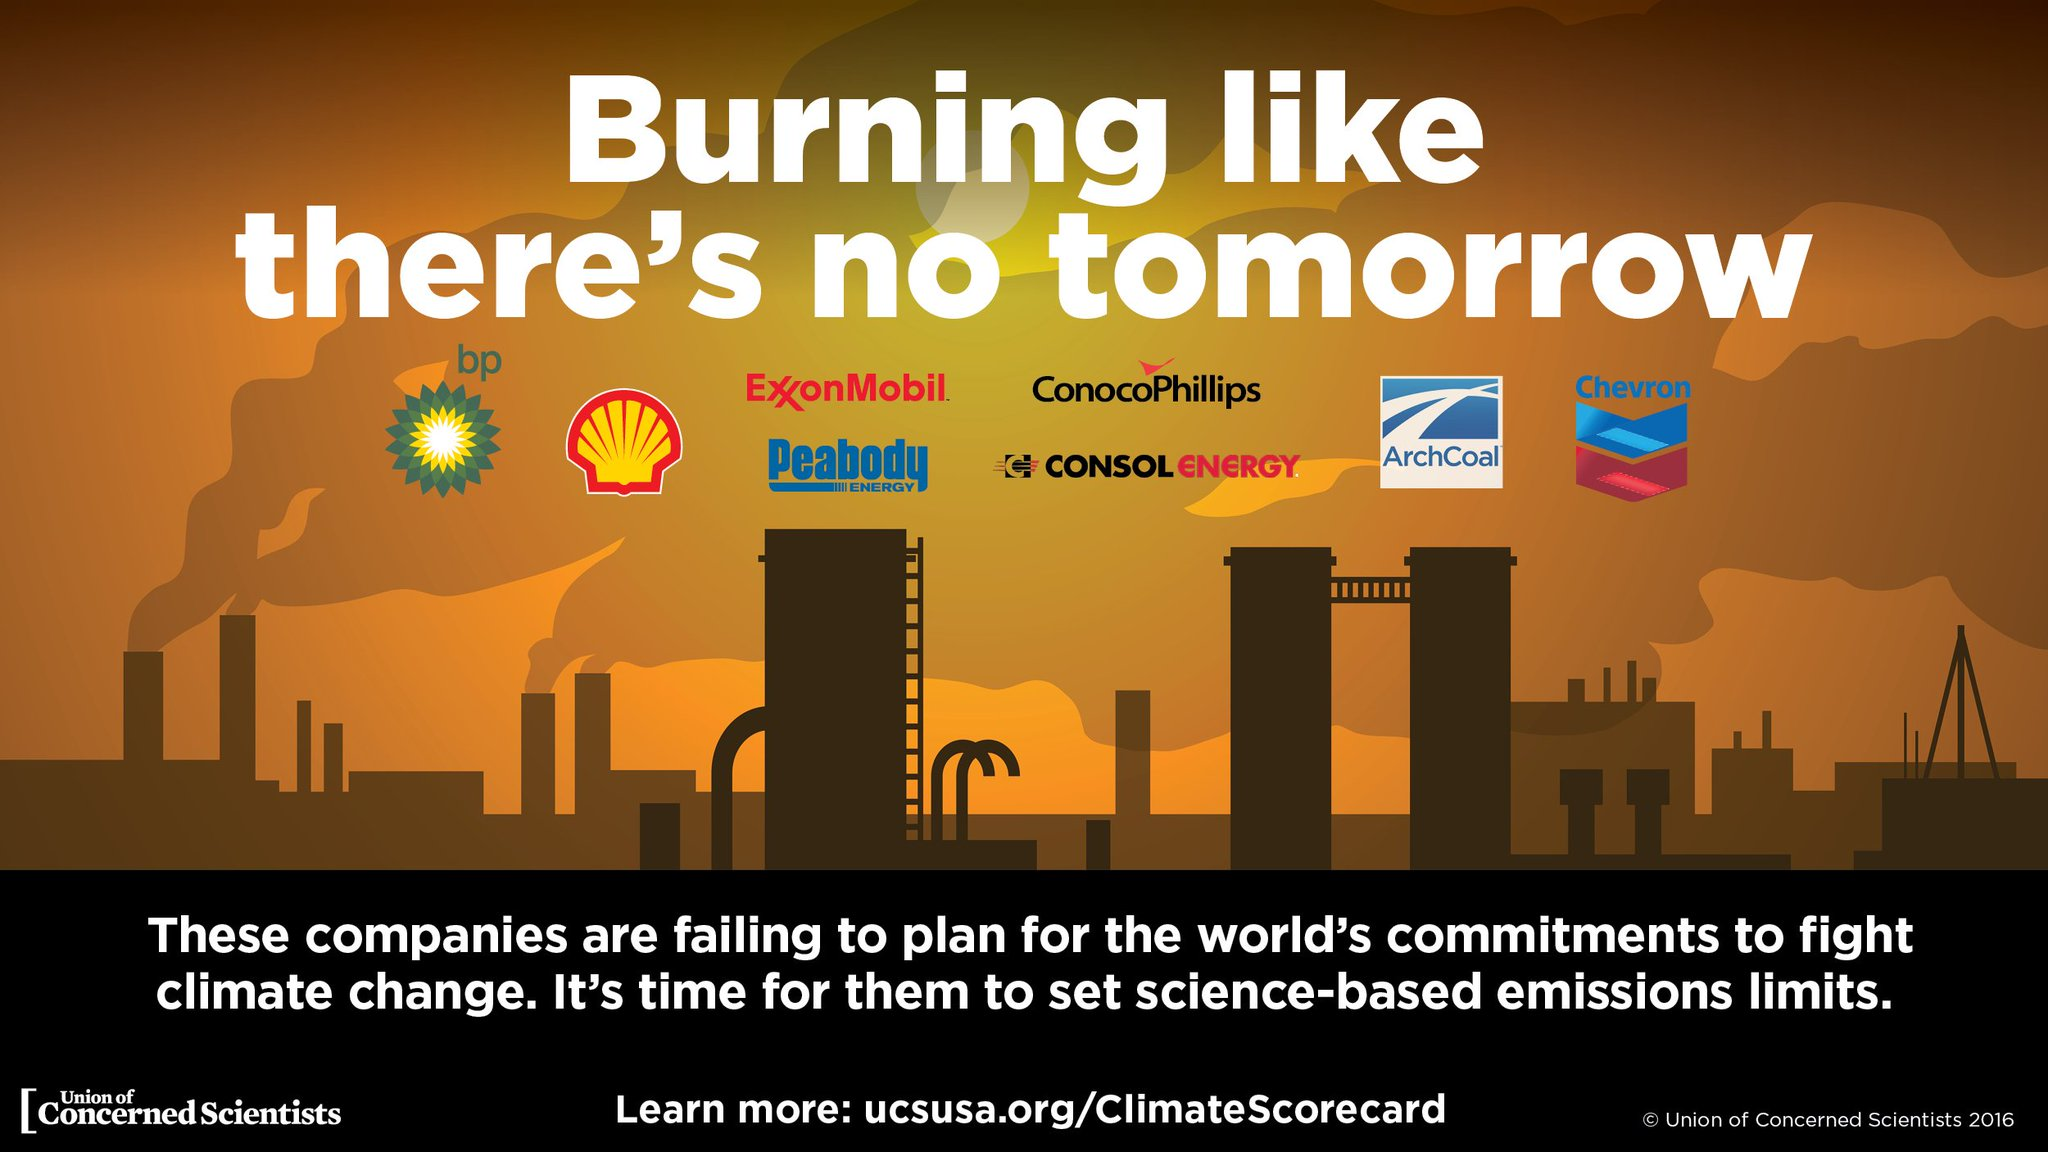 It's Time for the Fossil Fuel Industry to Join Global Climate Action